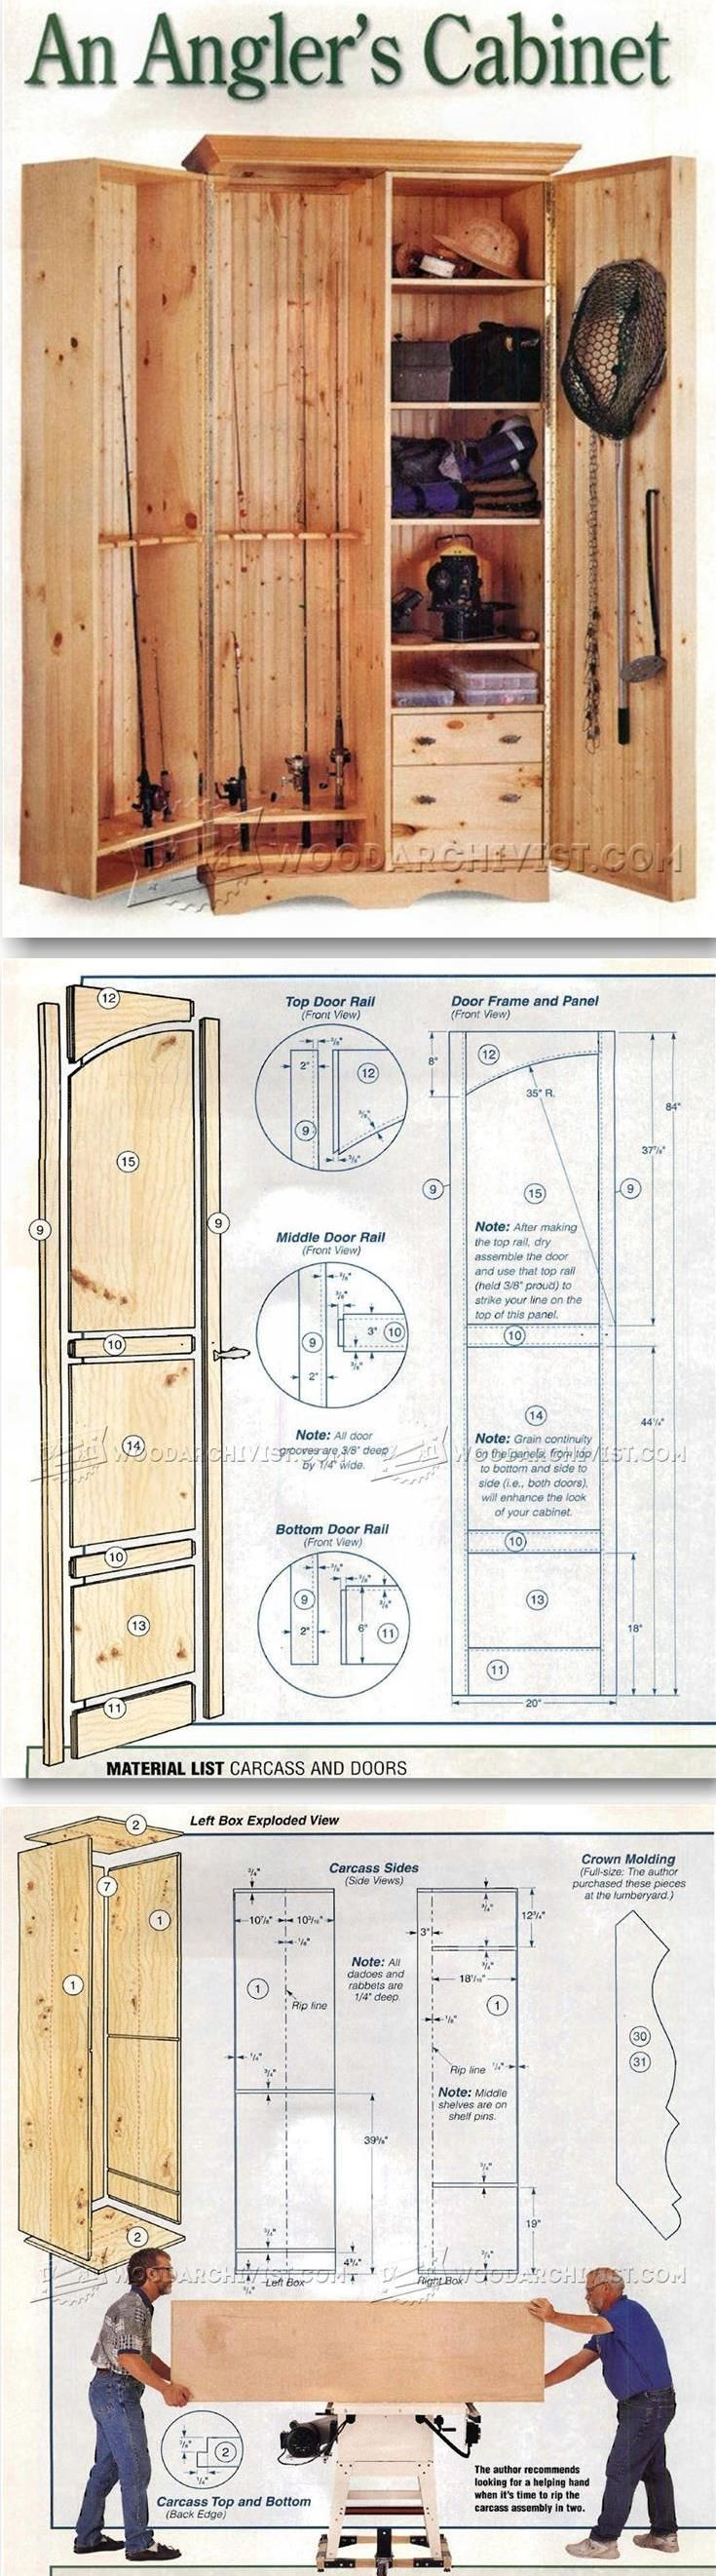 remodel furniture free plans diy cupboard patio bedroom download concept great redwood